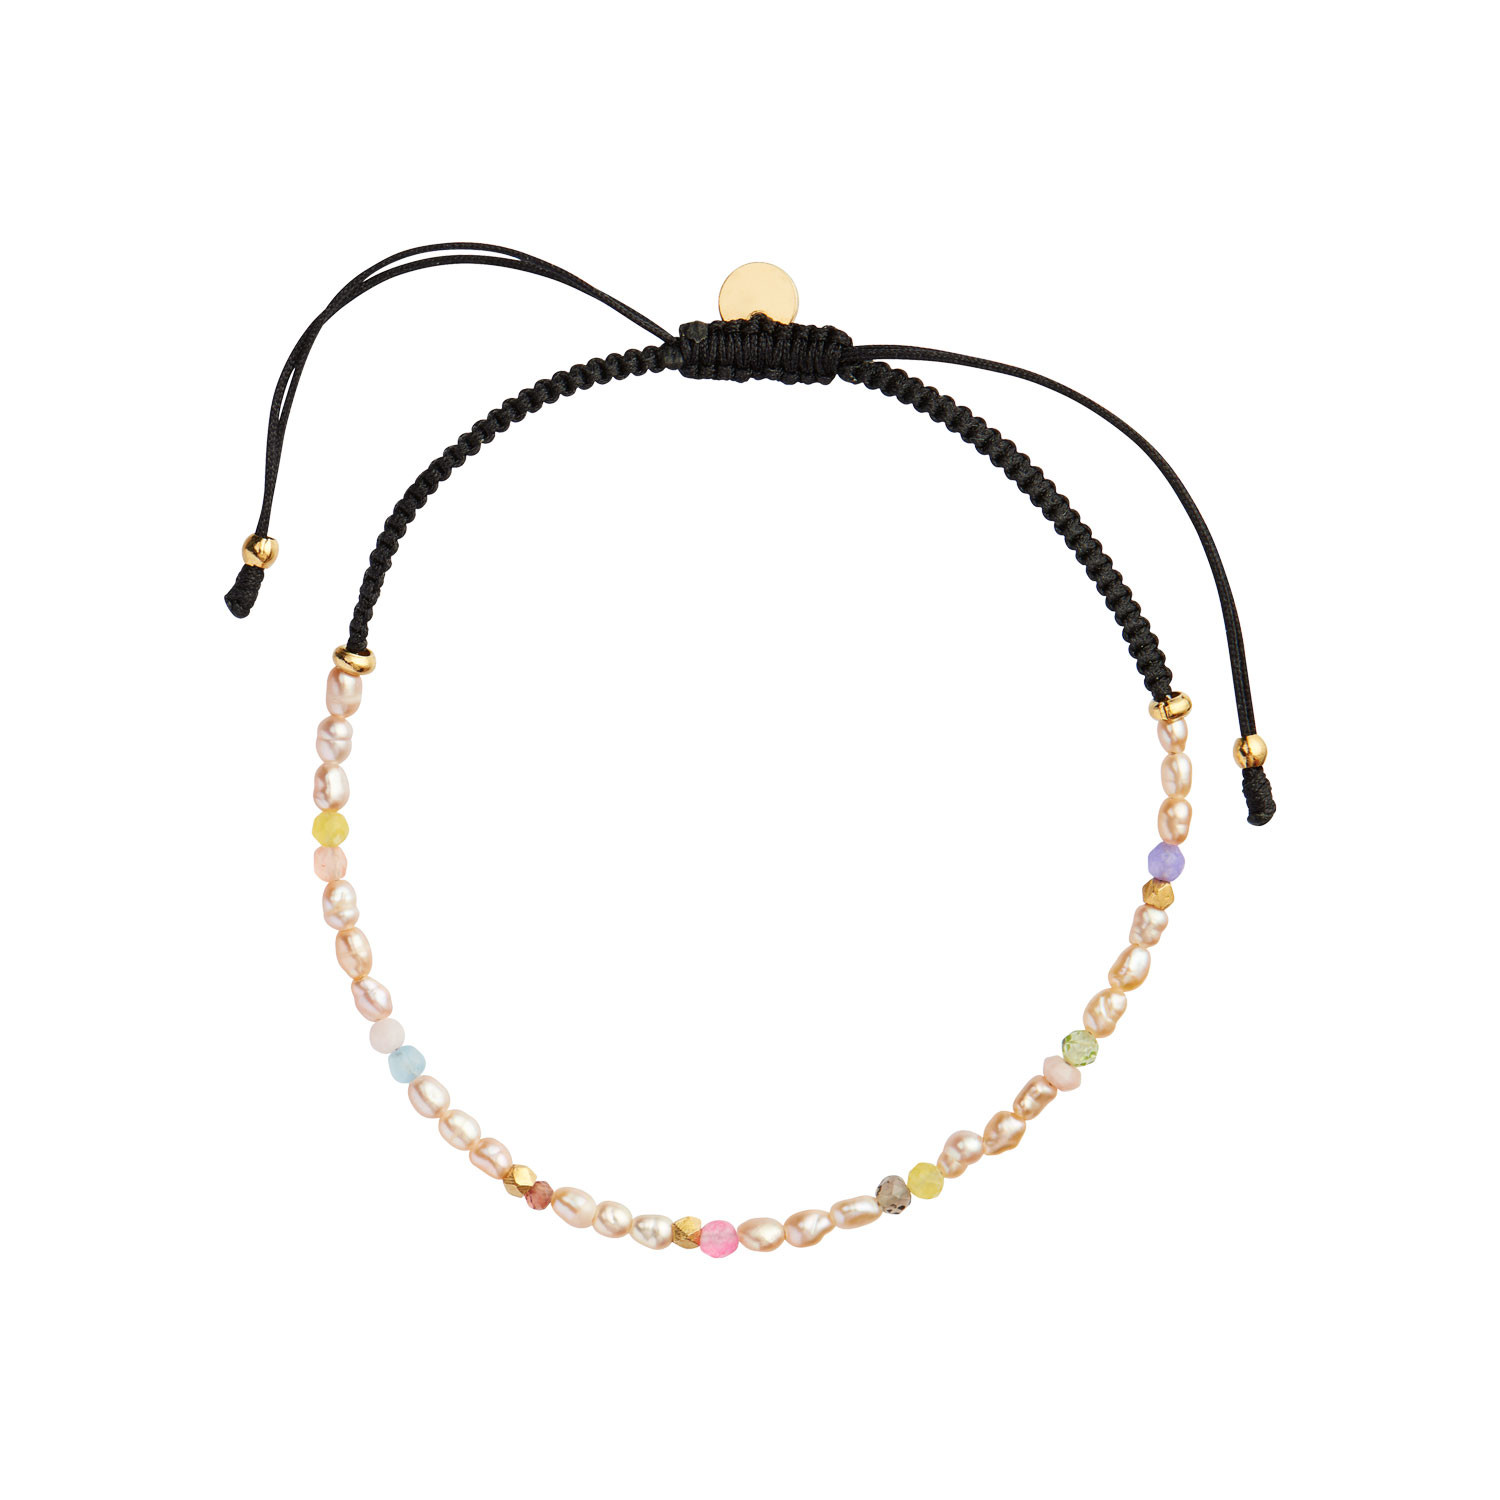 Confetti Pearl Bracelet with Beige and Pastel Mix with Black Ribbon